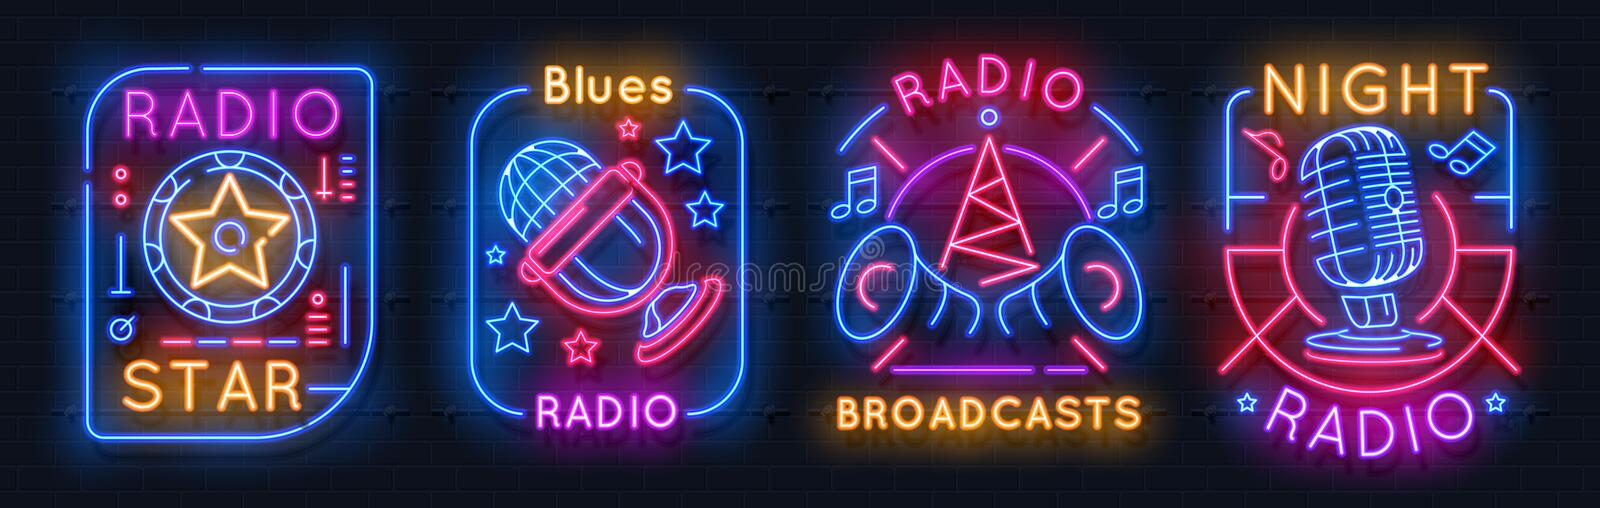 Radio neon sign. Music glowing icons, on air night light emblems, audio show concept. Vector neon radio communication royalty free illustration